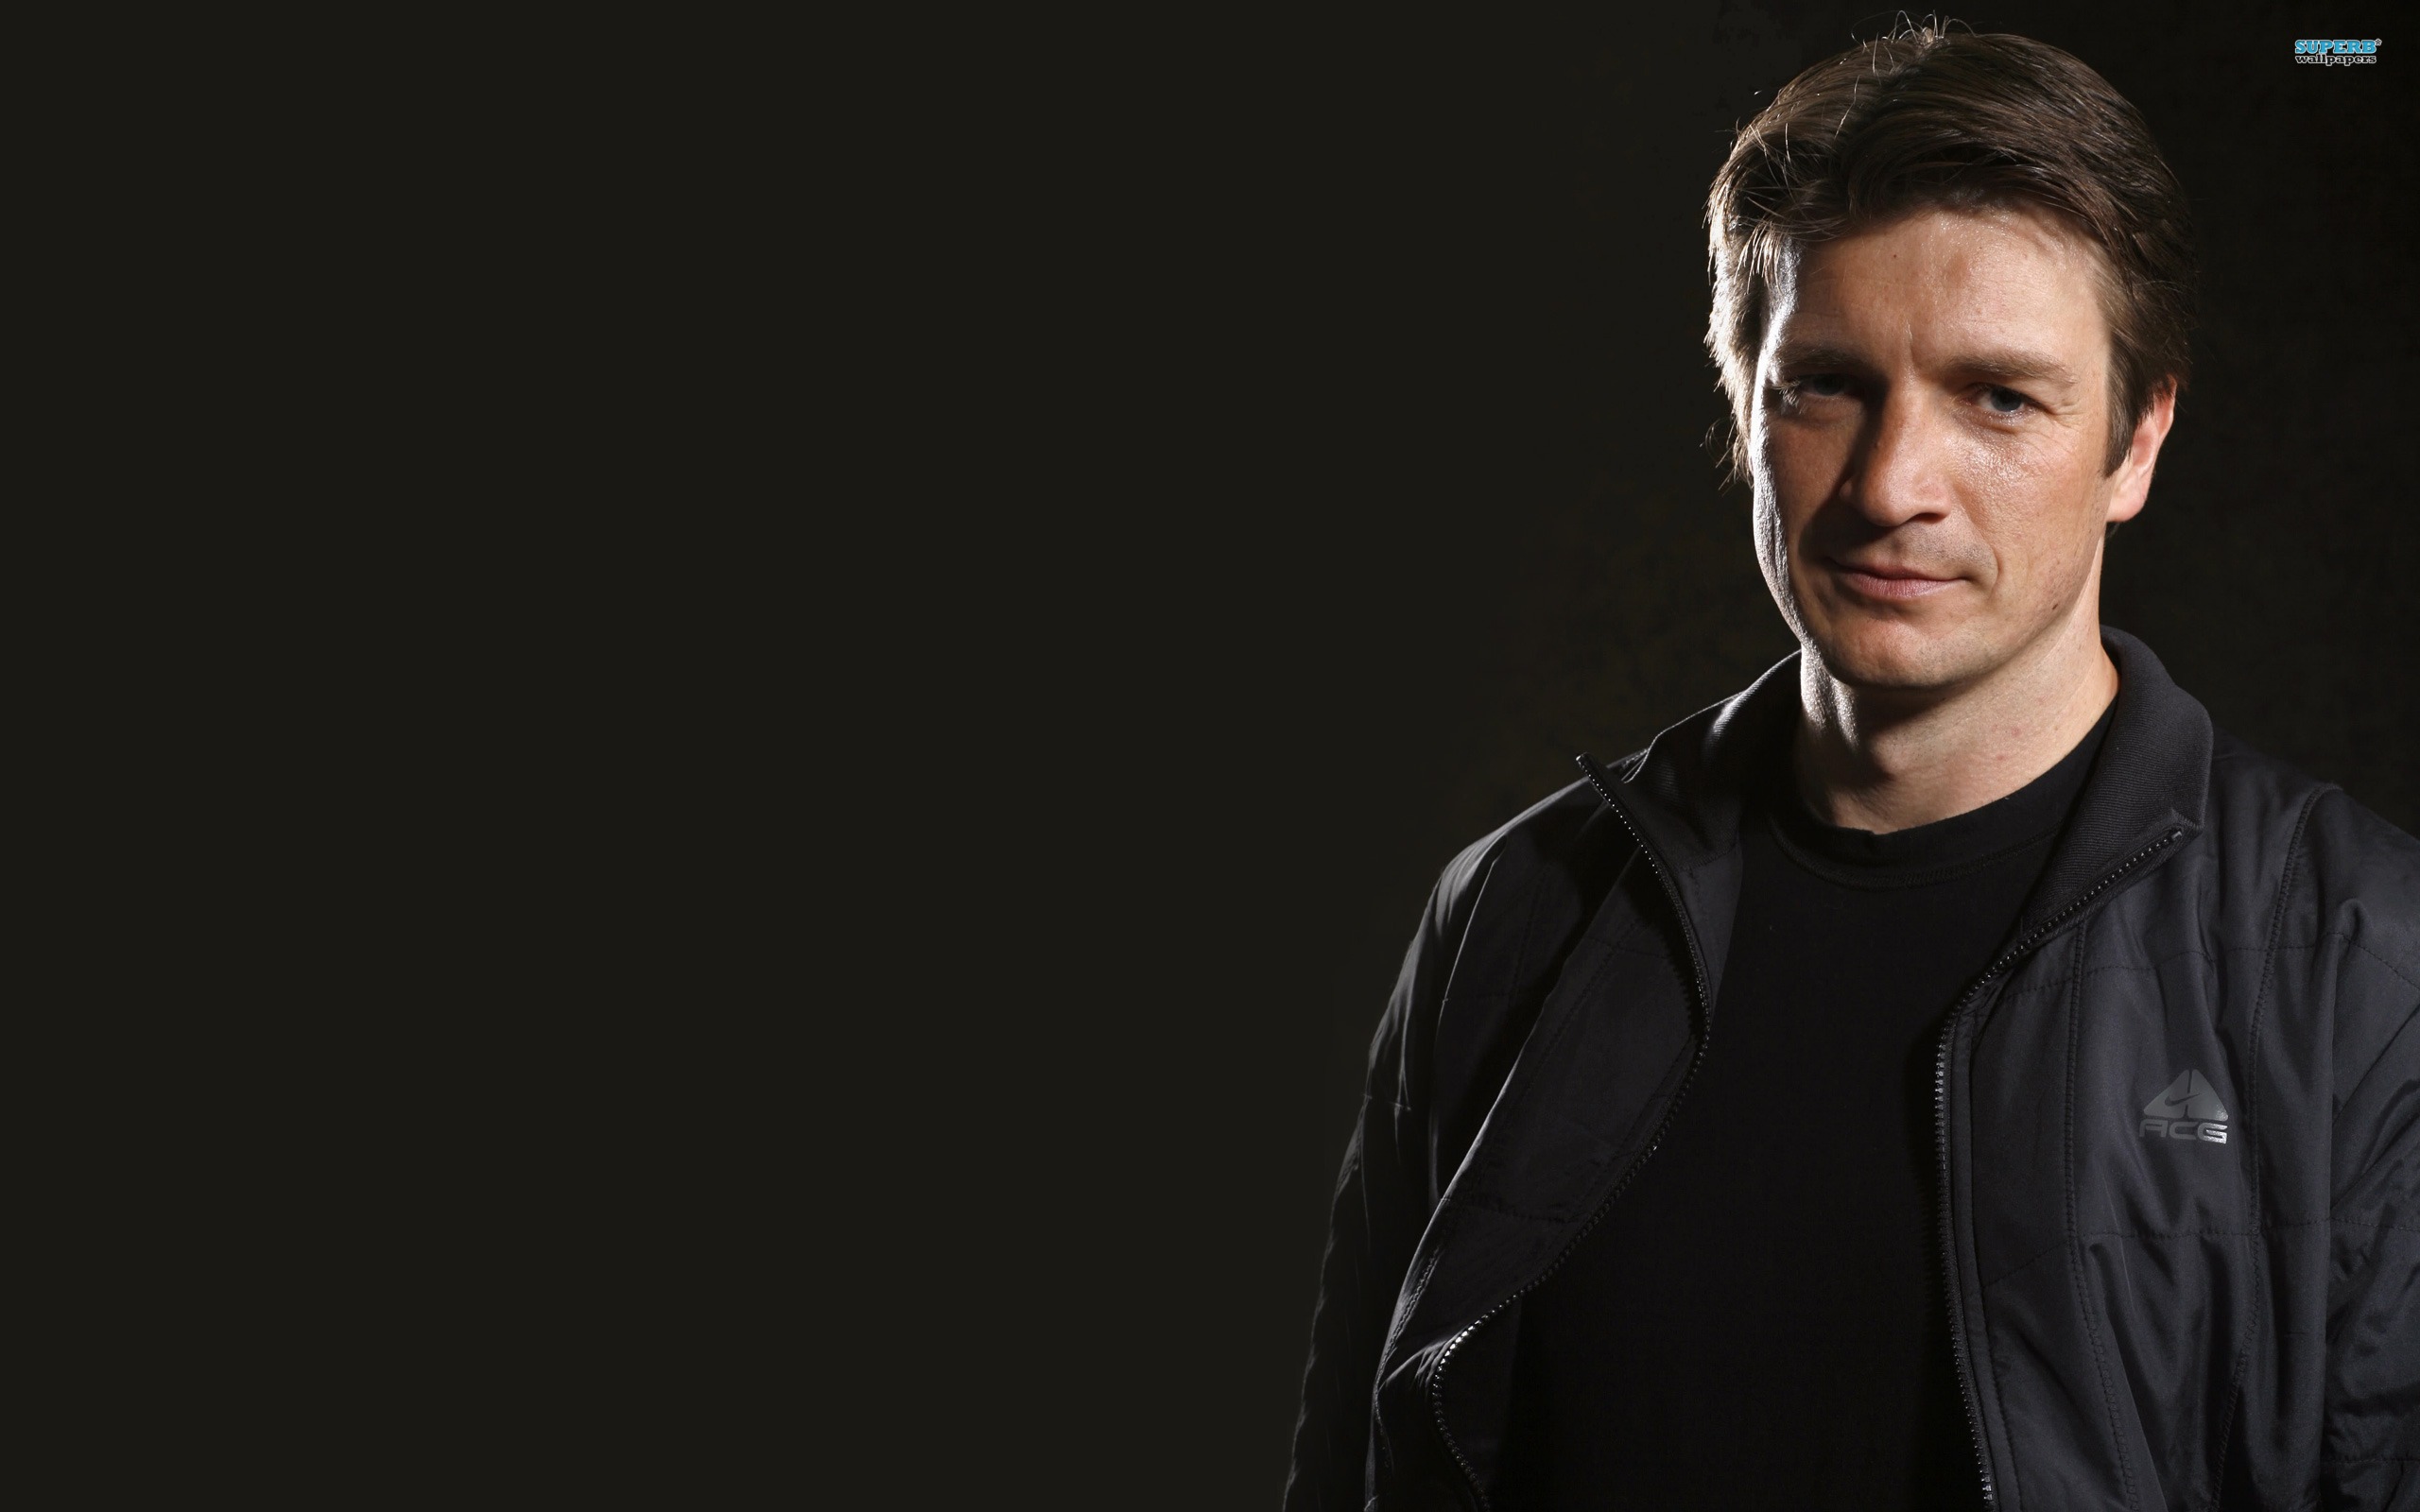 nathan fillion bucknathan fillion gif, nathan fillion twitter, nathan fillion gif nevermind, nathan fillion 2017, nathan fillion young, nathan fillion firefly, nathan fillion 2016, nathan fillion nevermind, nathan fillion castle, nathan fillion wonder man, nathan fillion cable, nathan fillion interview, nathan fillion booster gold, nathan fillion guardians of the galaxy cameo, nathan fillion gif tumblr, nathan fillion galaxy guardians, nathan fillion forum, nathan fillion quotes, nathan fillion new show, nathan fillion buck